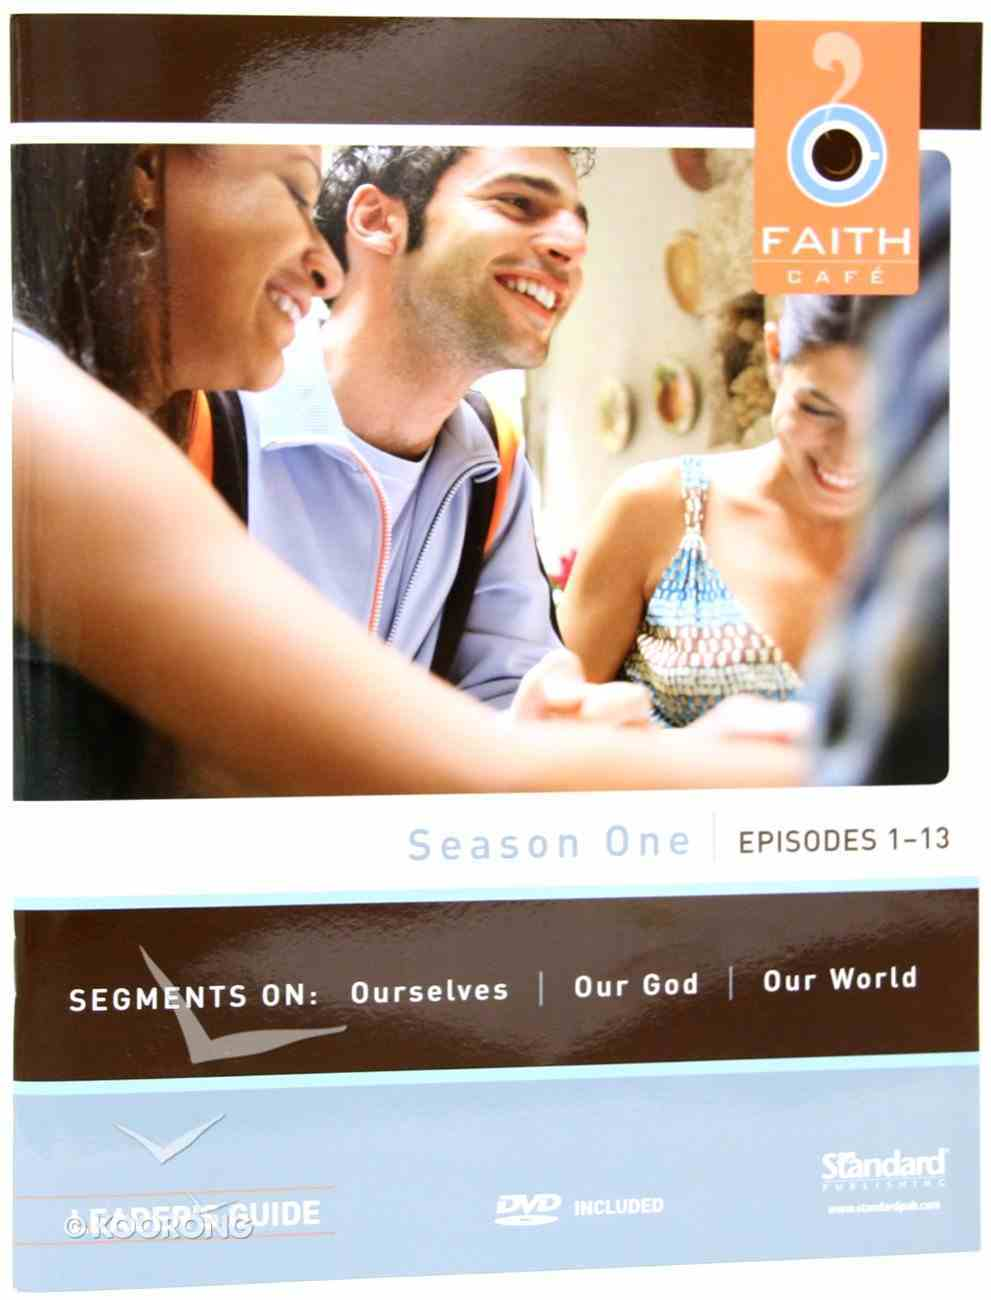 Season One Episodes 1-13 : Segments on Ourselves, Our God, Our World (Leader's Guide) (Faith Cafe Series) Paperback